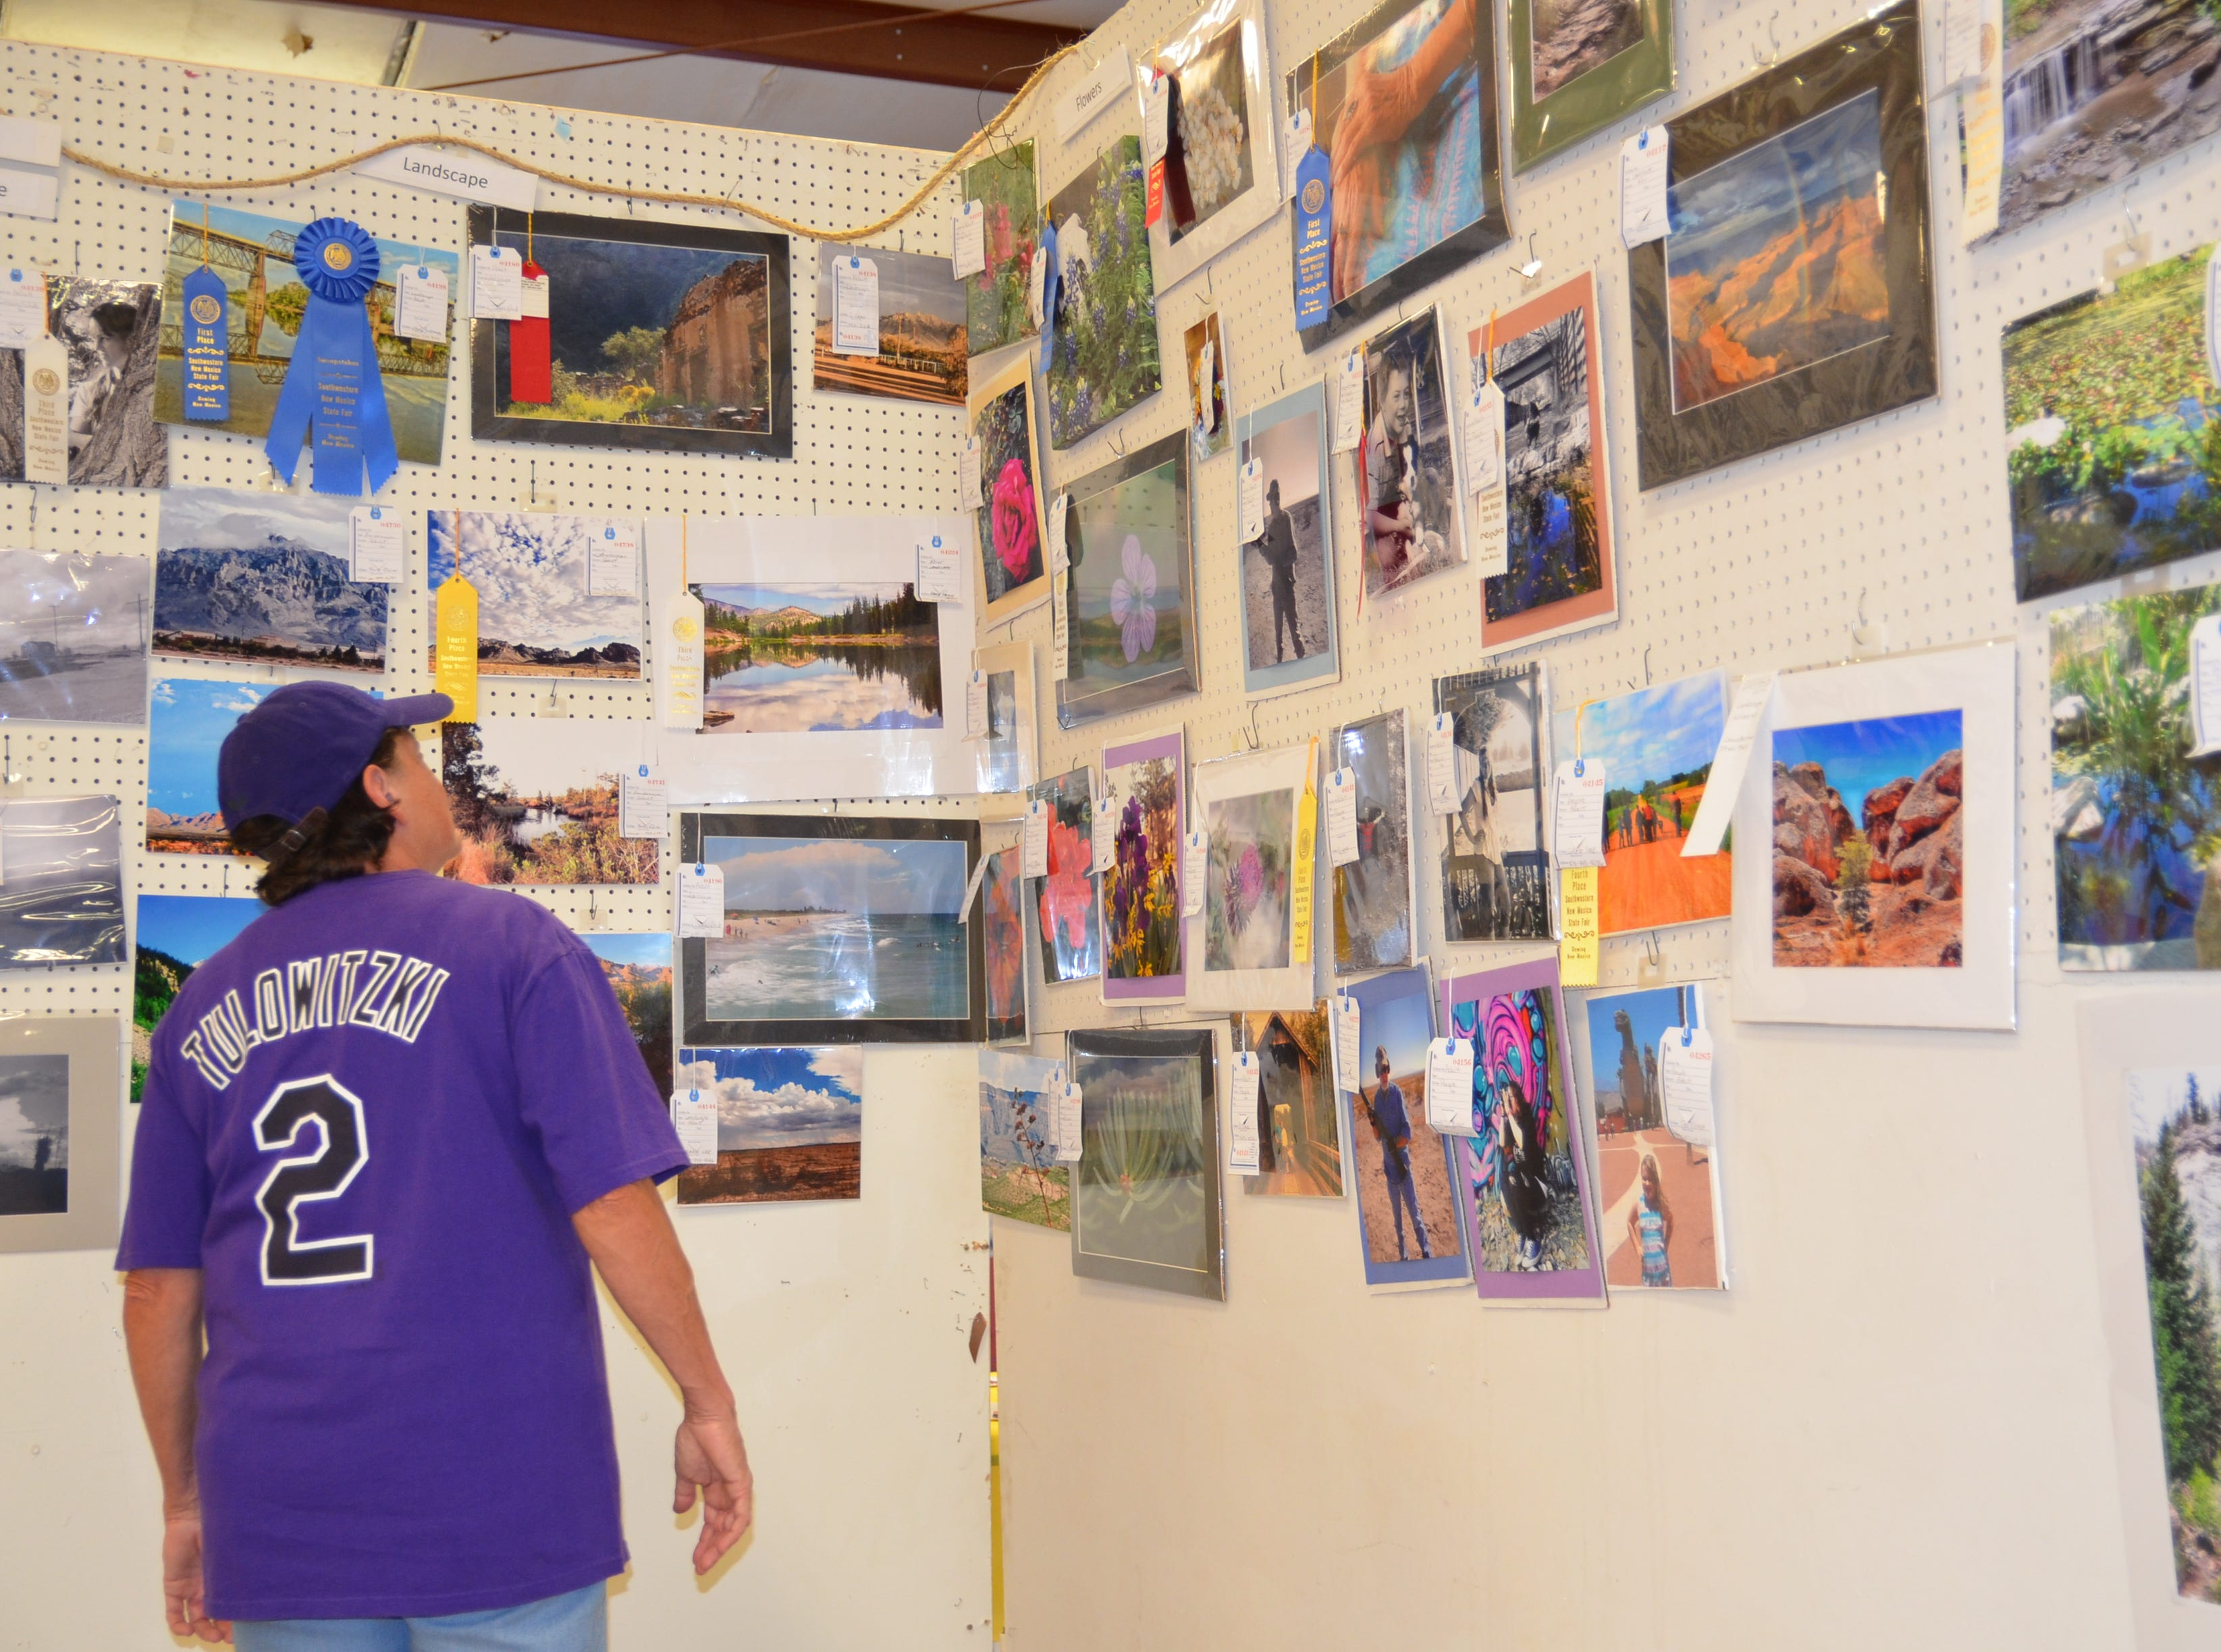 A fair-goer gazes over the prized photo entries at the Photography Show during the Agtoberfest at the Southwestern New Mexico State Fair on Friday.